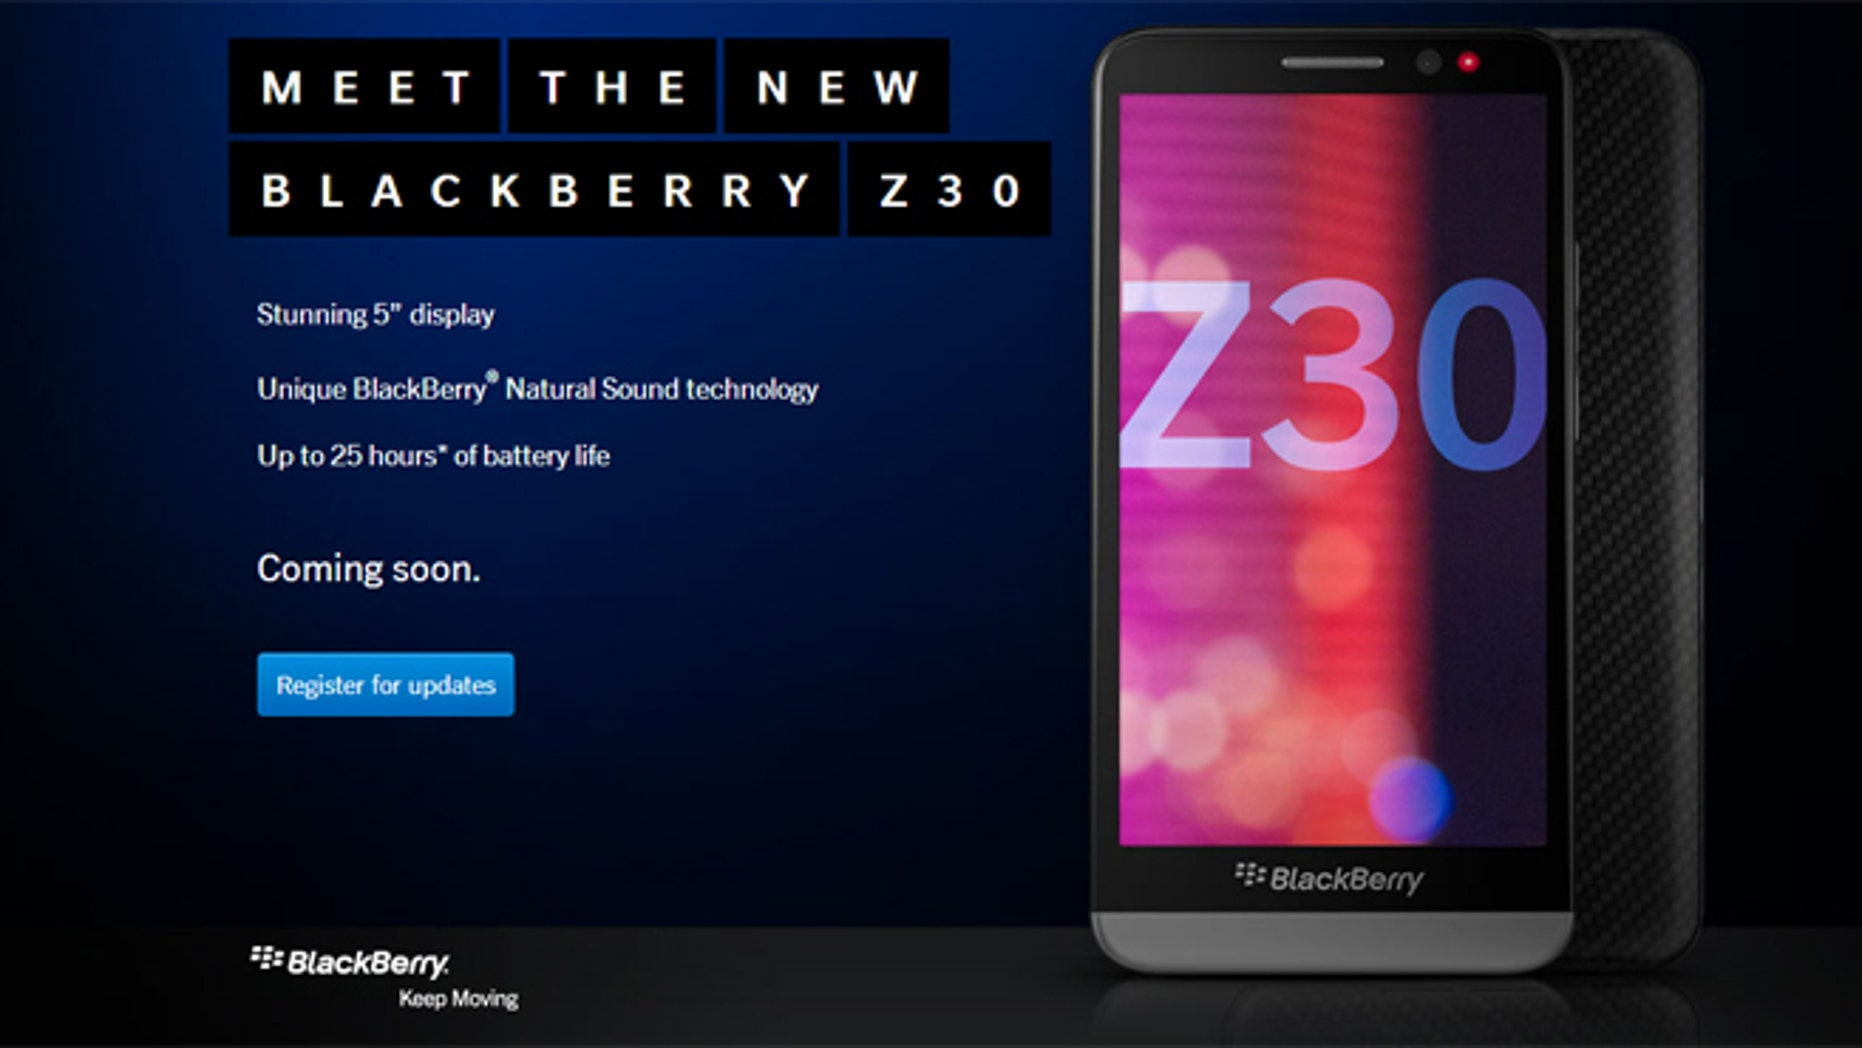 BlackBerry has unveiled its new Z30 smartphone.